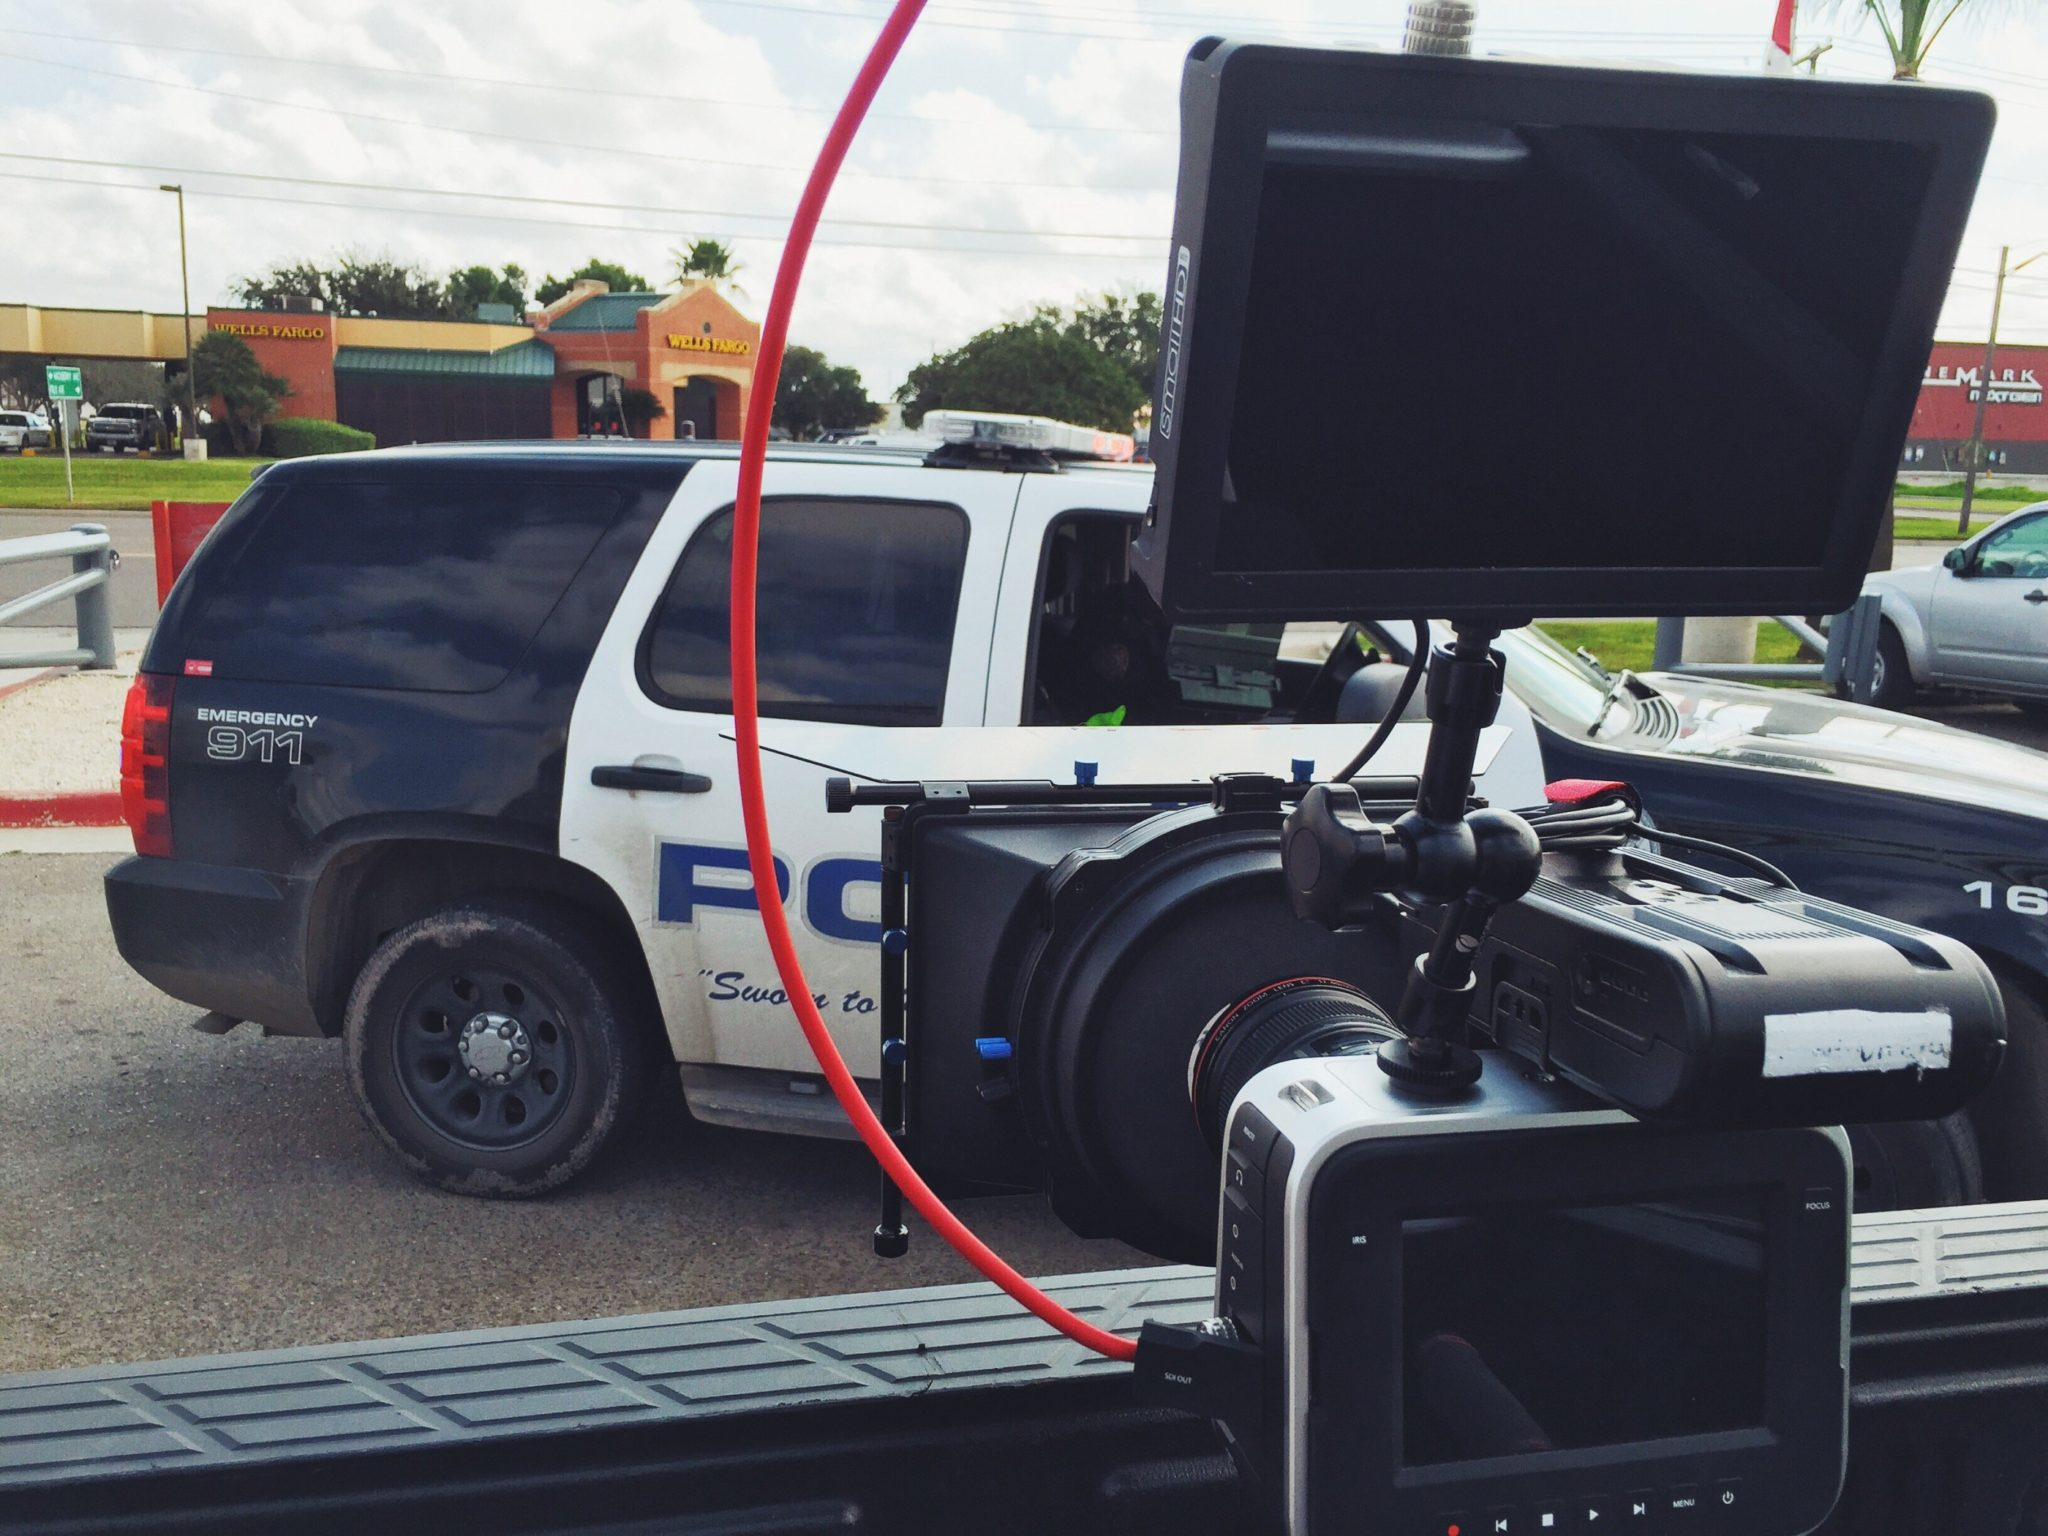 During the shoot, Pharr PD pulled over someone who parked behind the picture car and blocked us in, holding up production for a few minutes. But we were waiting for a hero car to be washed so, it worked out.